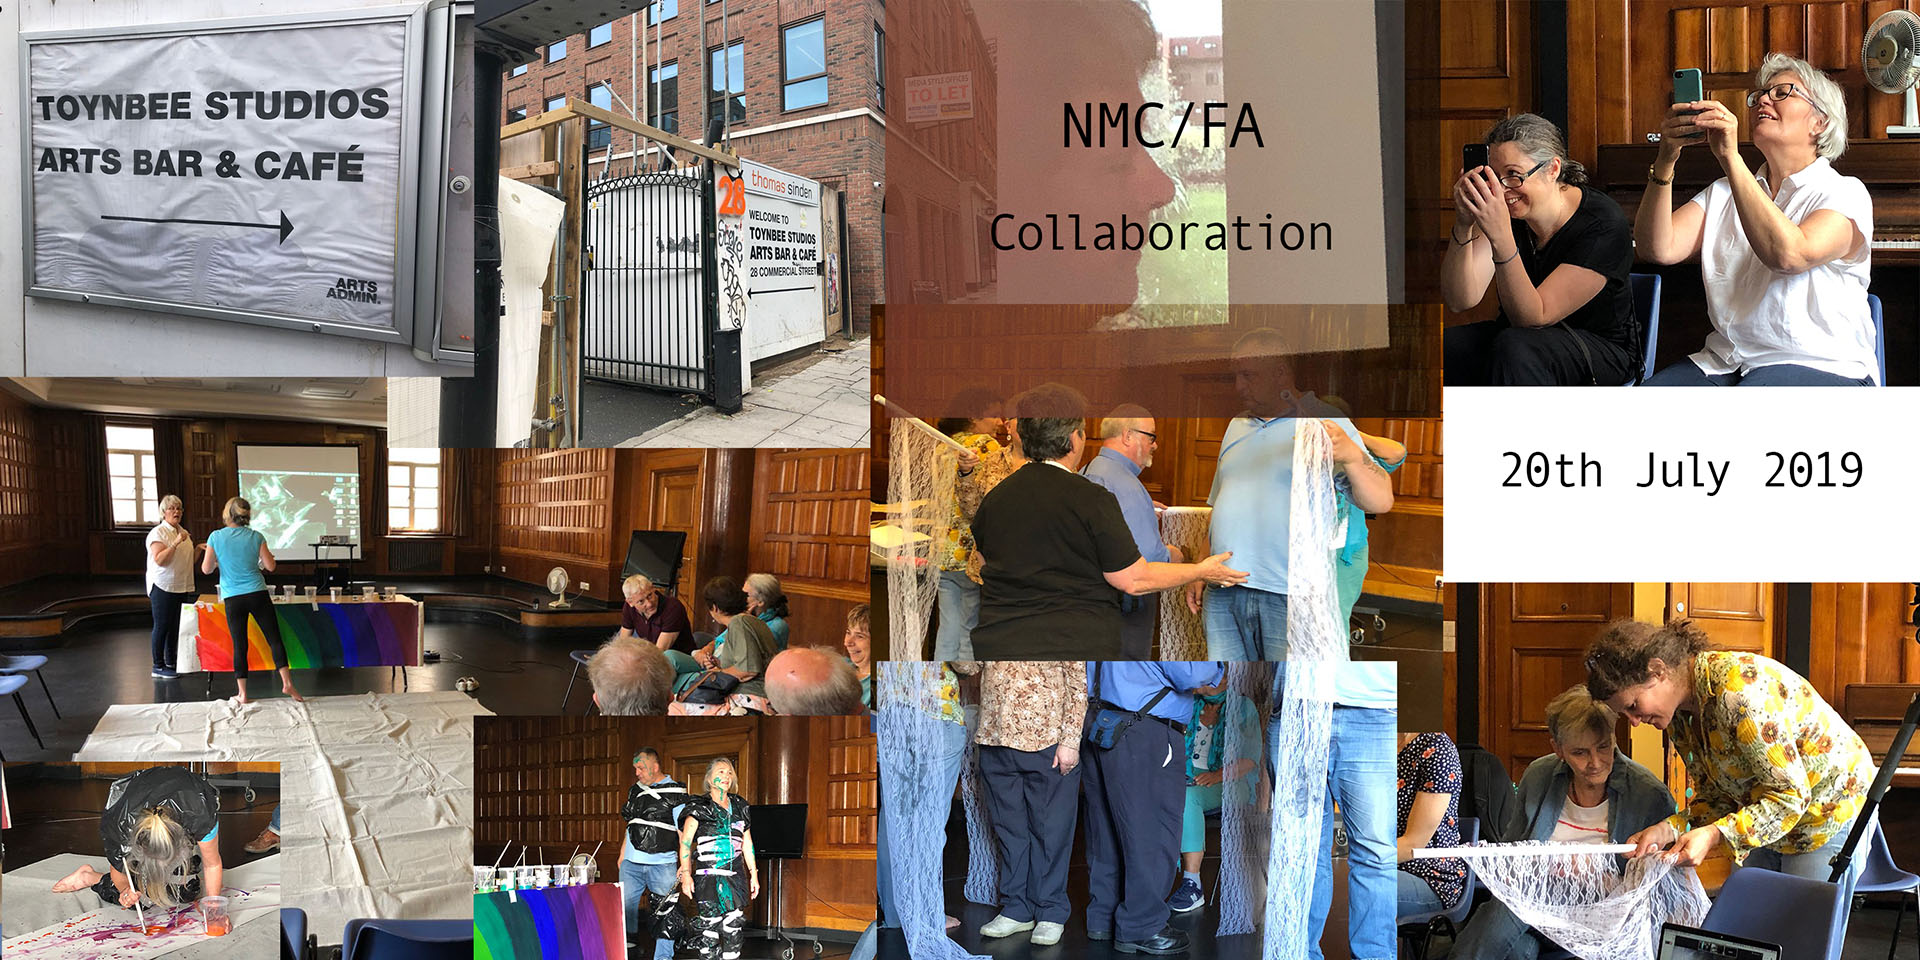 Stefan513593 - NMU/FA Collaboration OCA - 20July2019